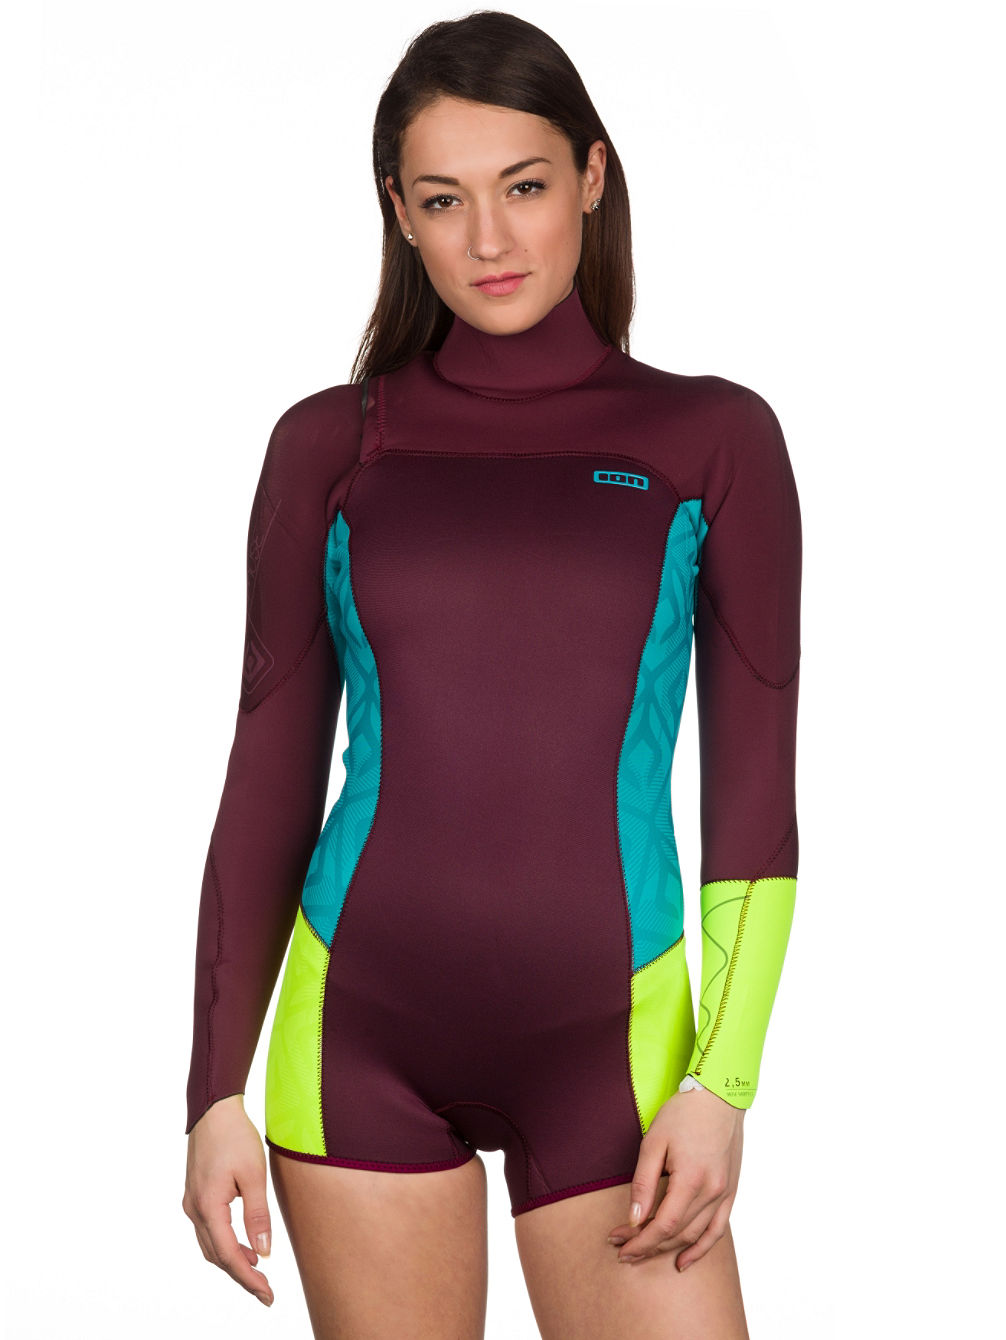 muse-shorty-25-wetsuit